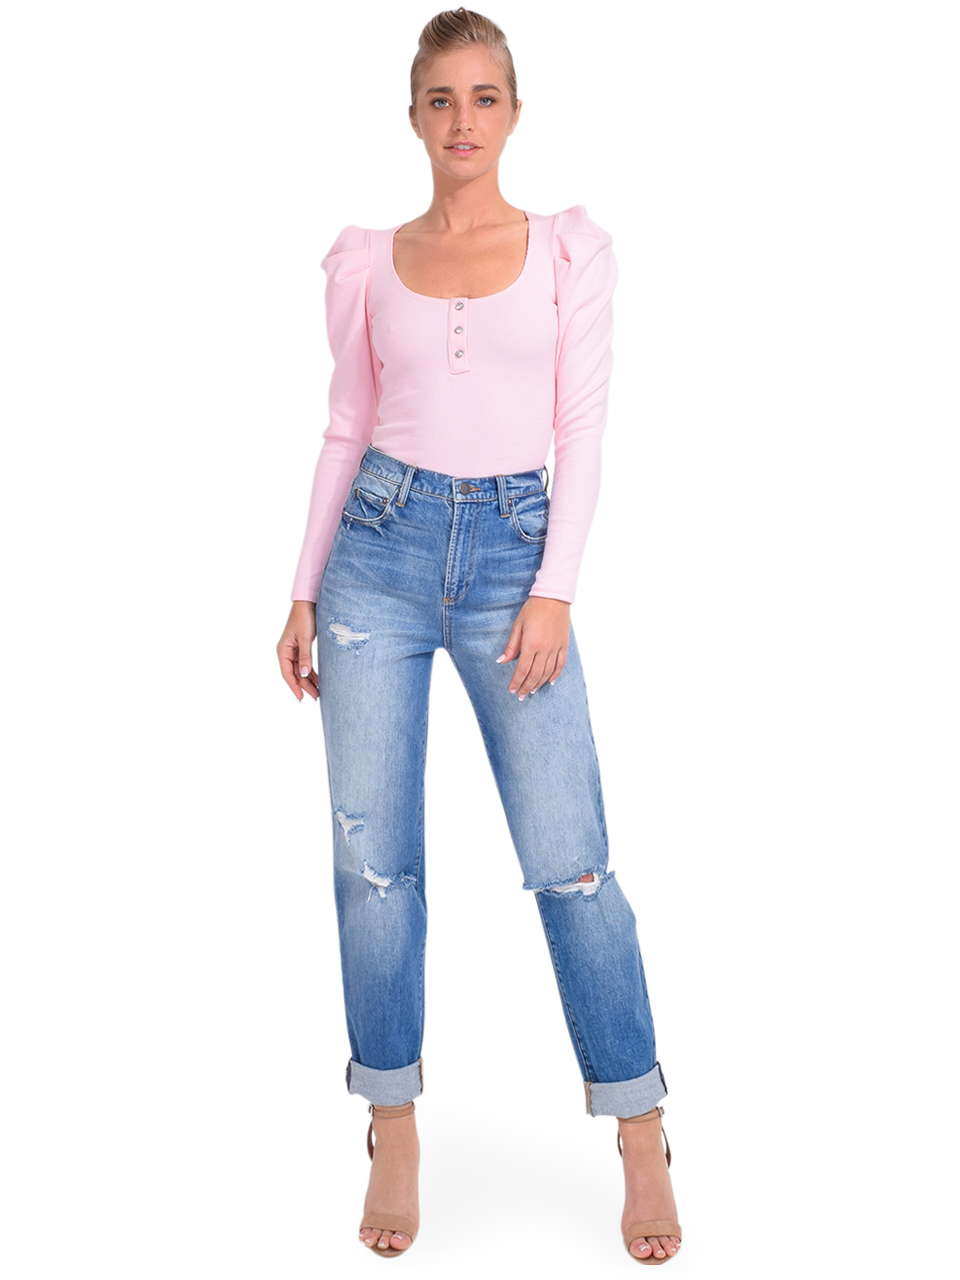 ALICE + OLIVIA Katerina High Waist Baggy Jean Full Outfit